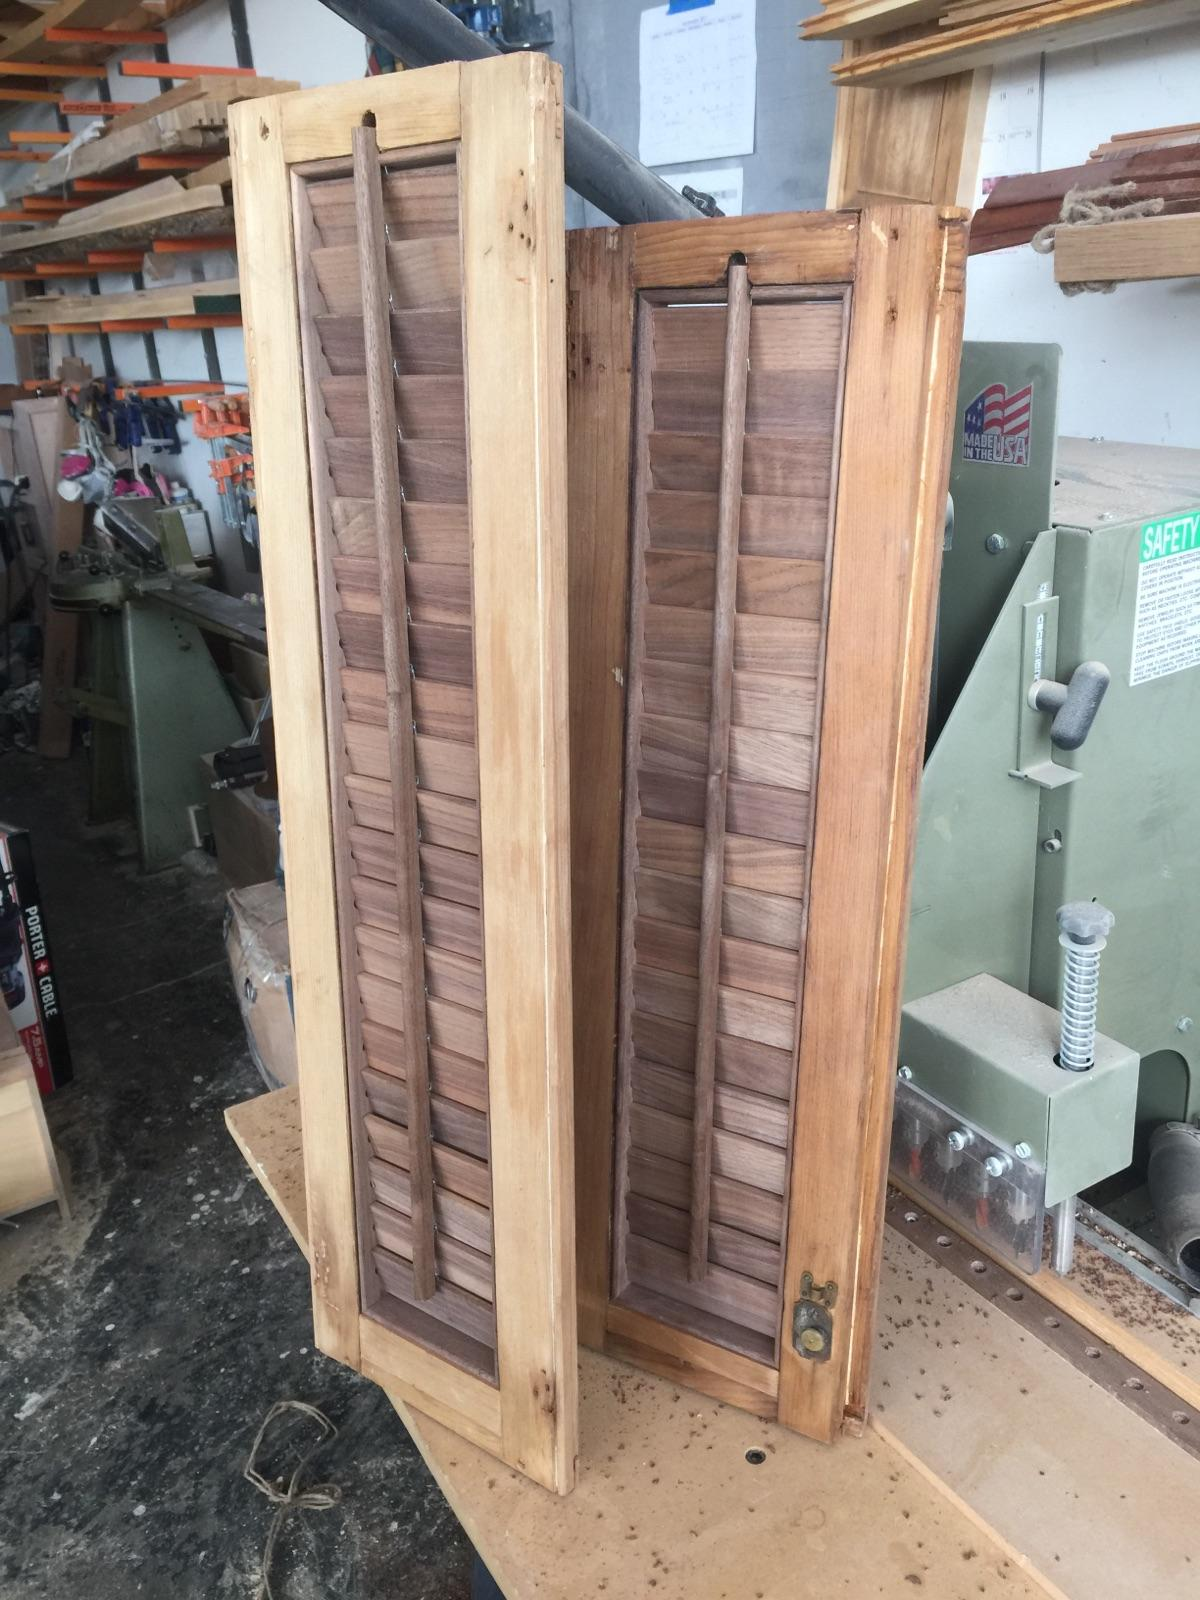 The original louvers looked to be (severely sun and rain damaged) black walnut. We just happened to have a little black walnut laying around, and used it to recreate the louver assemblies. It looks great unfinished, framed up by the old unfinished white pine.